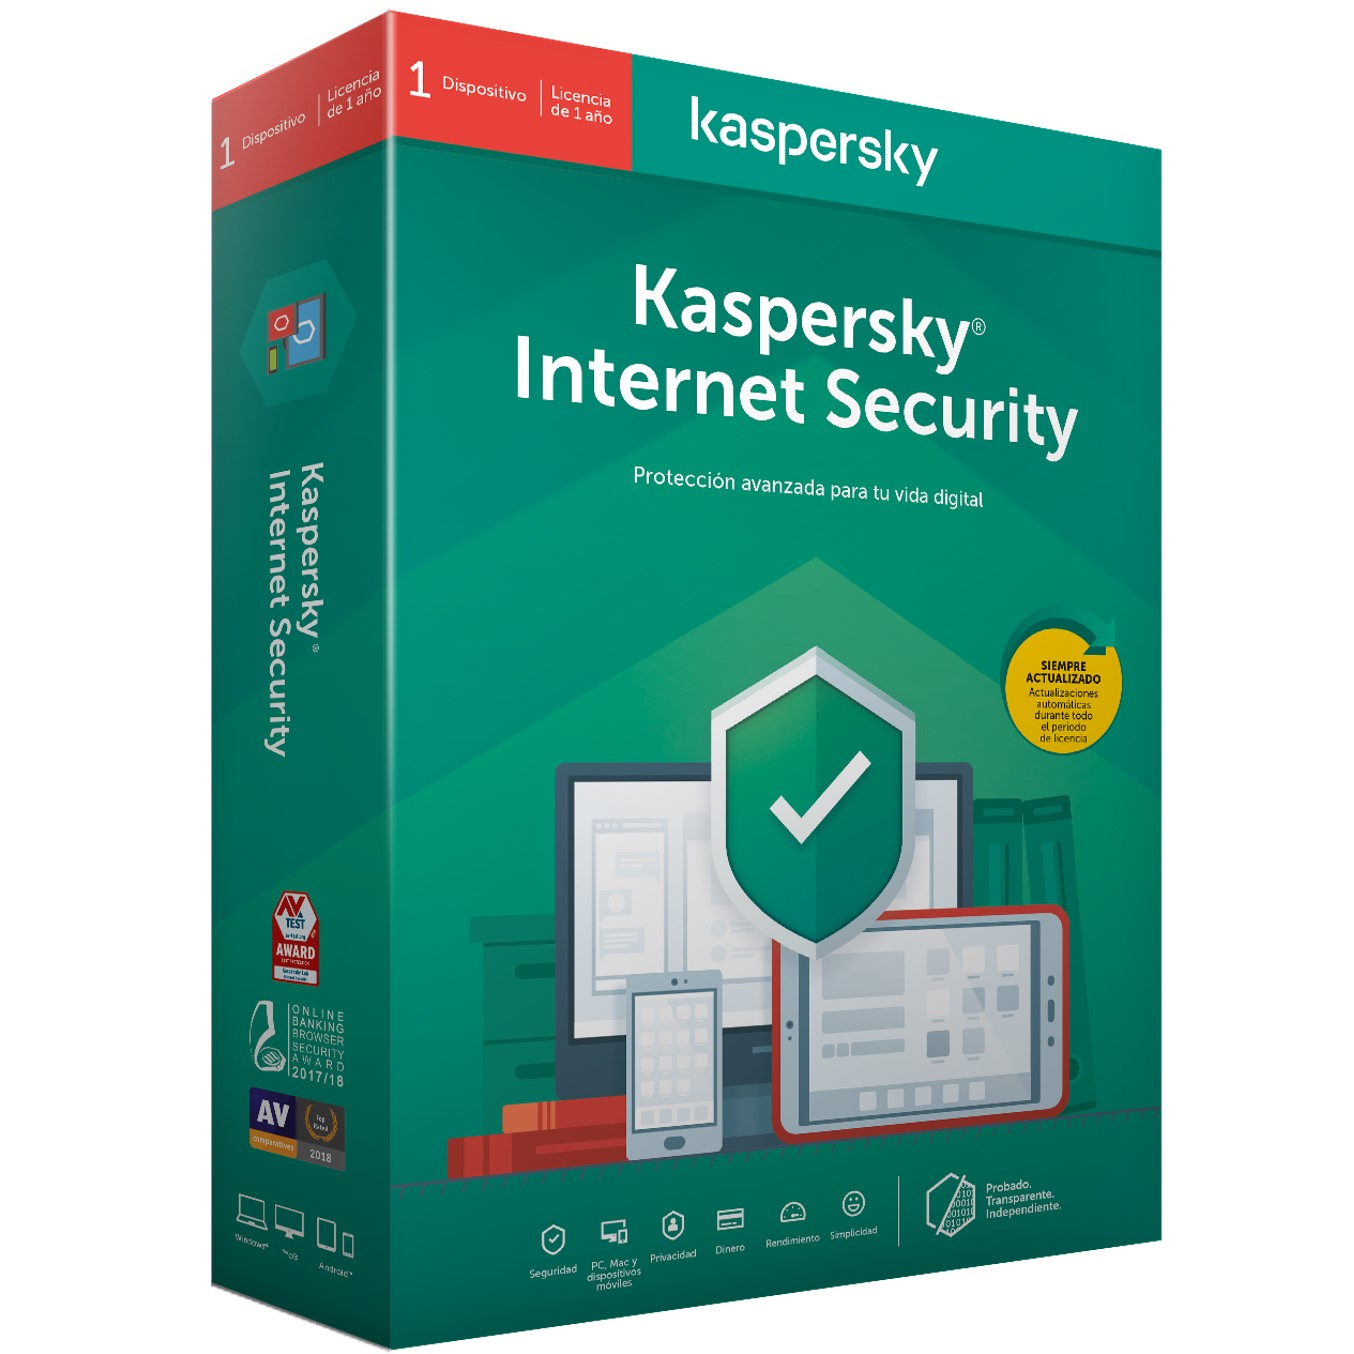 KASPERSKY INTERNET SECURITY 2020 - 1 USUARIO 1 AÃ?O